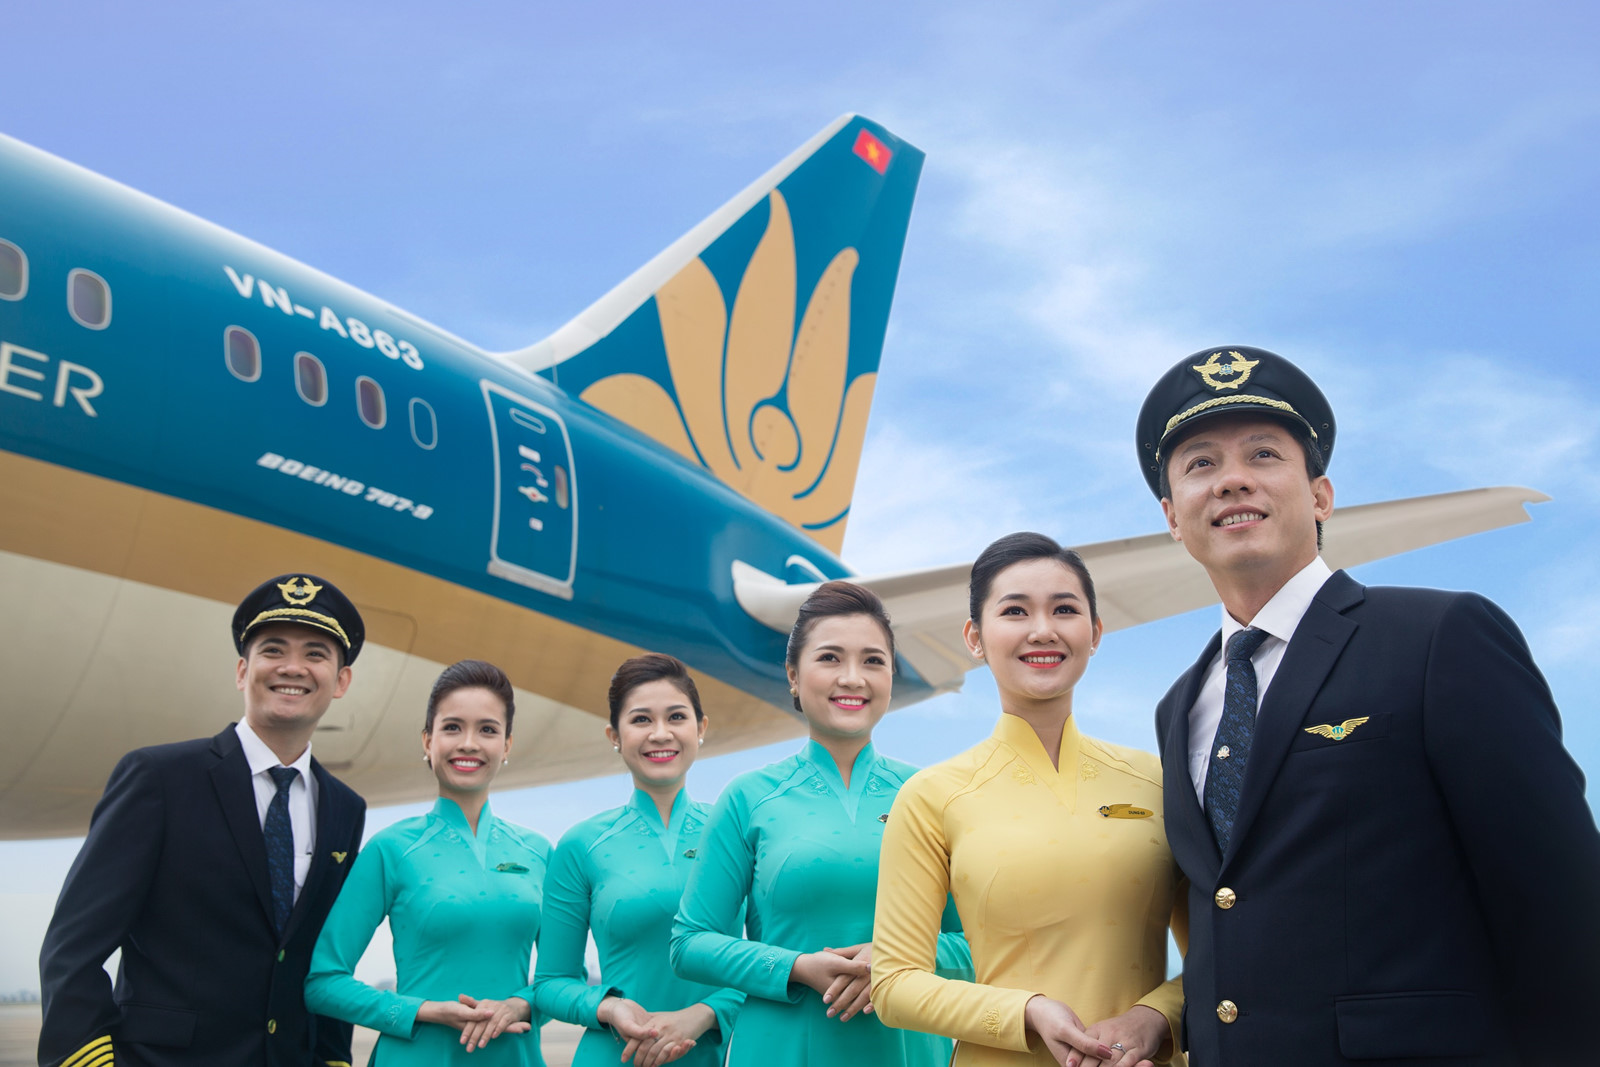 Review of a Vietnam Airlines flight